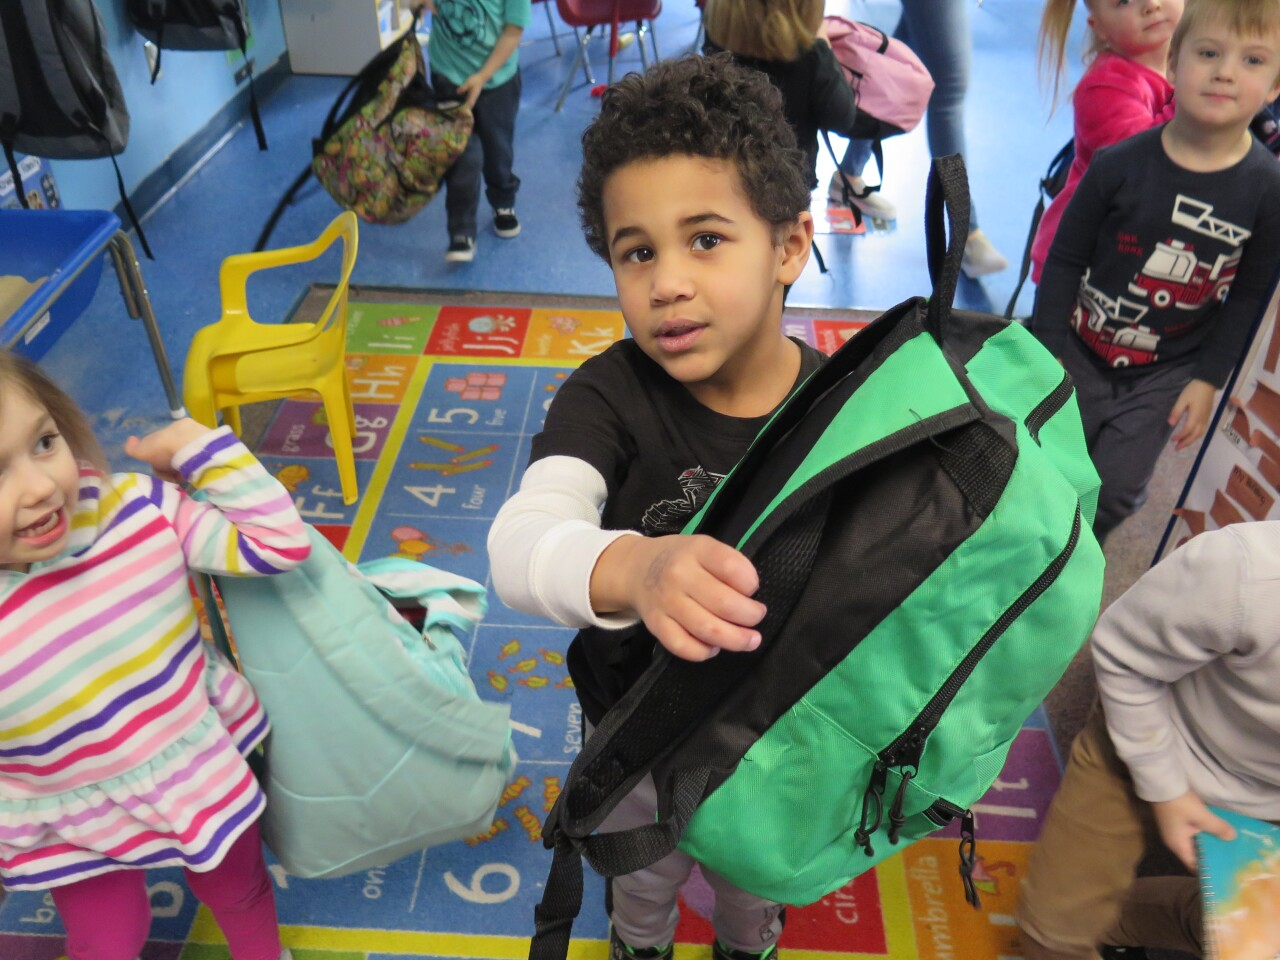 Bright_Future_boy_with_backpack.JPG